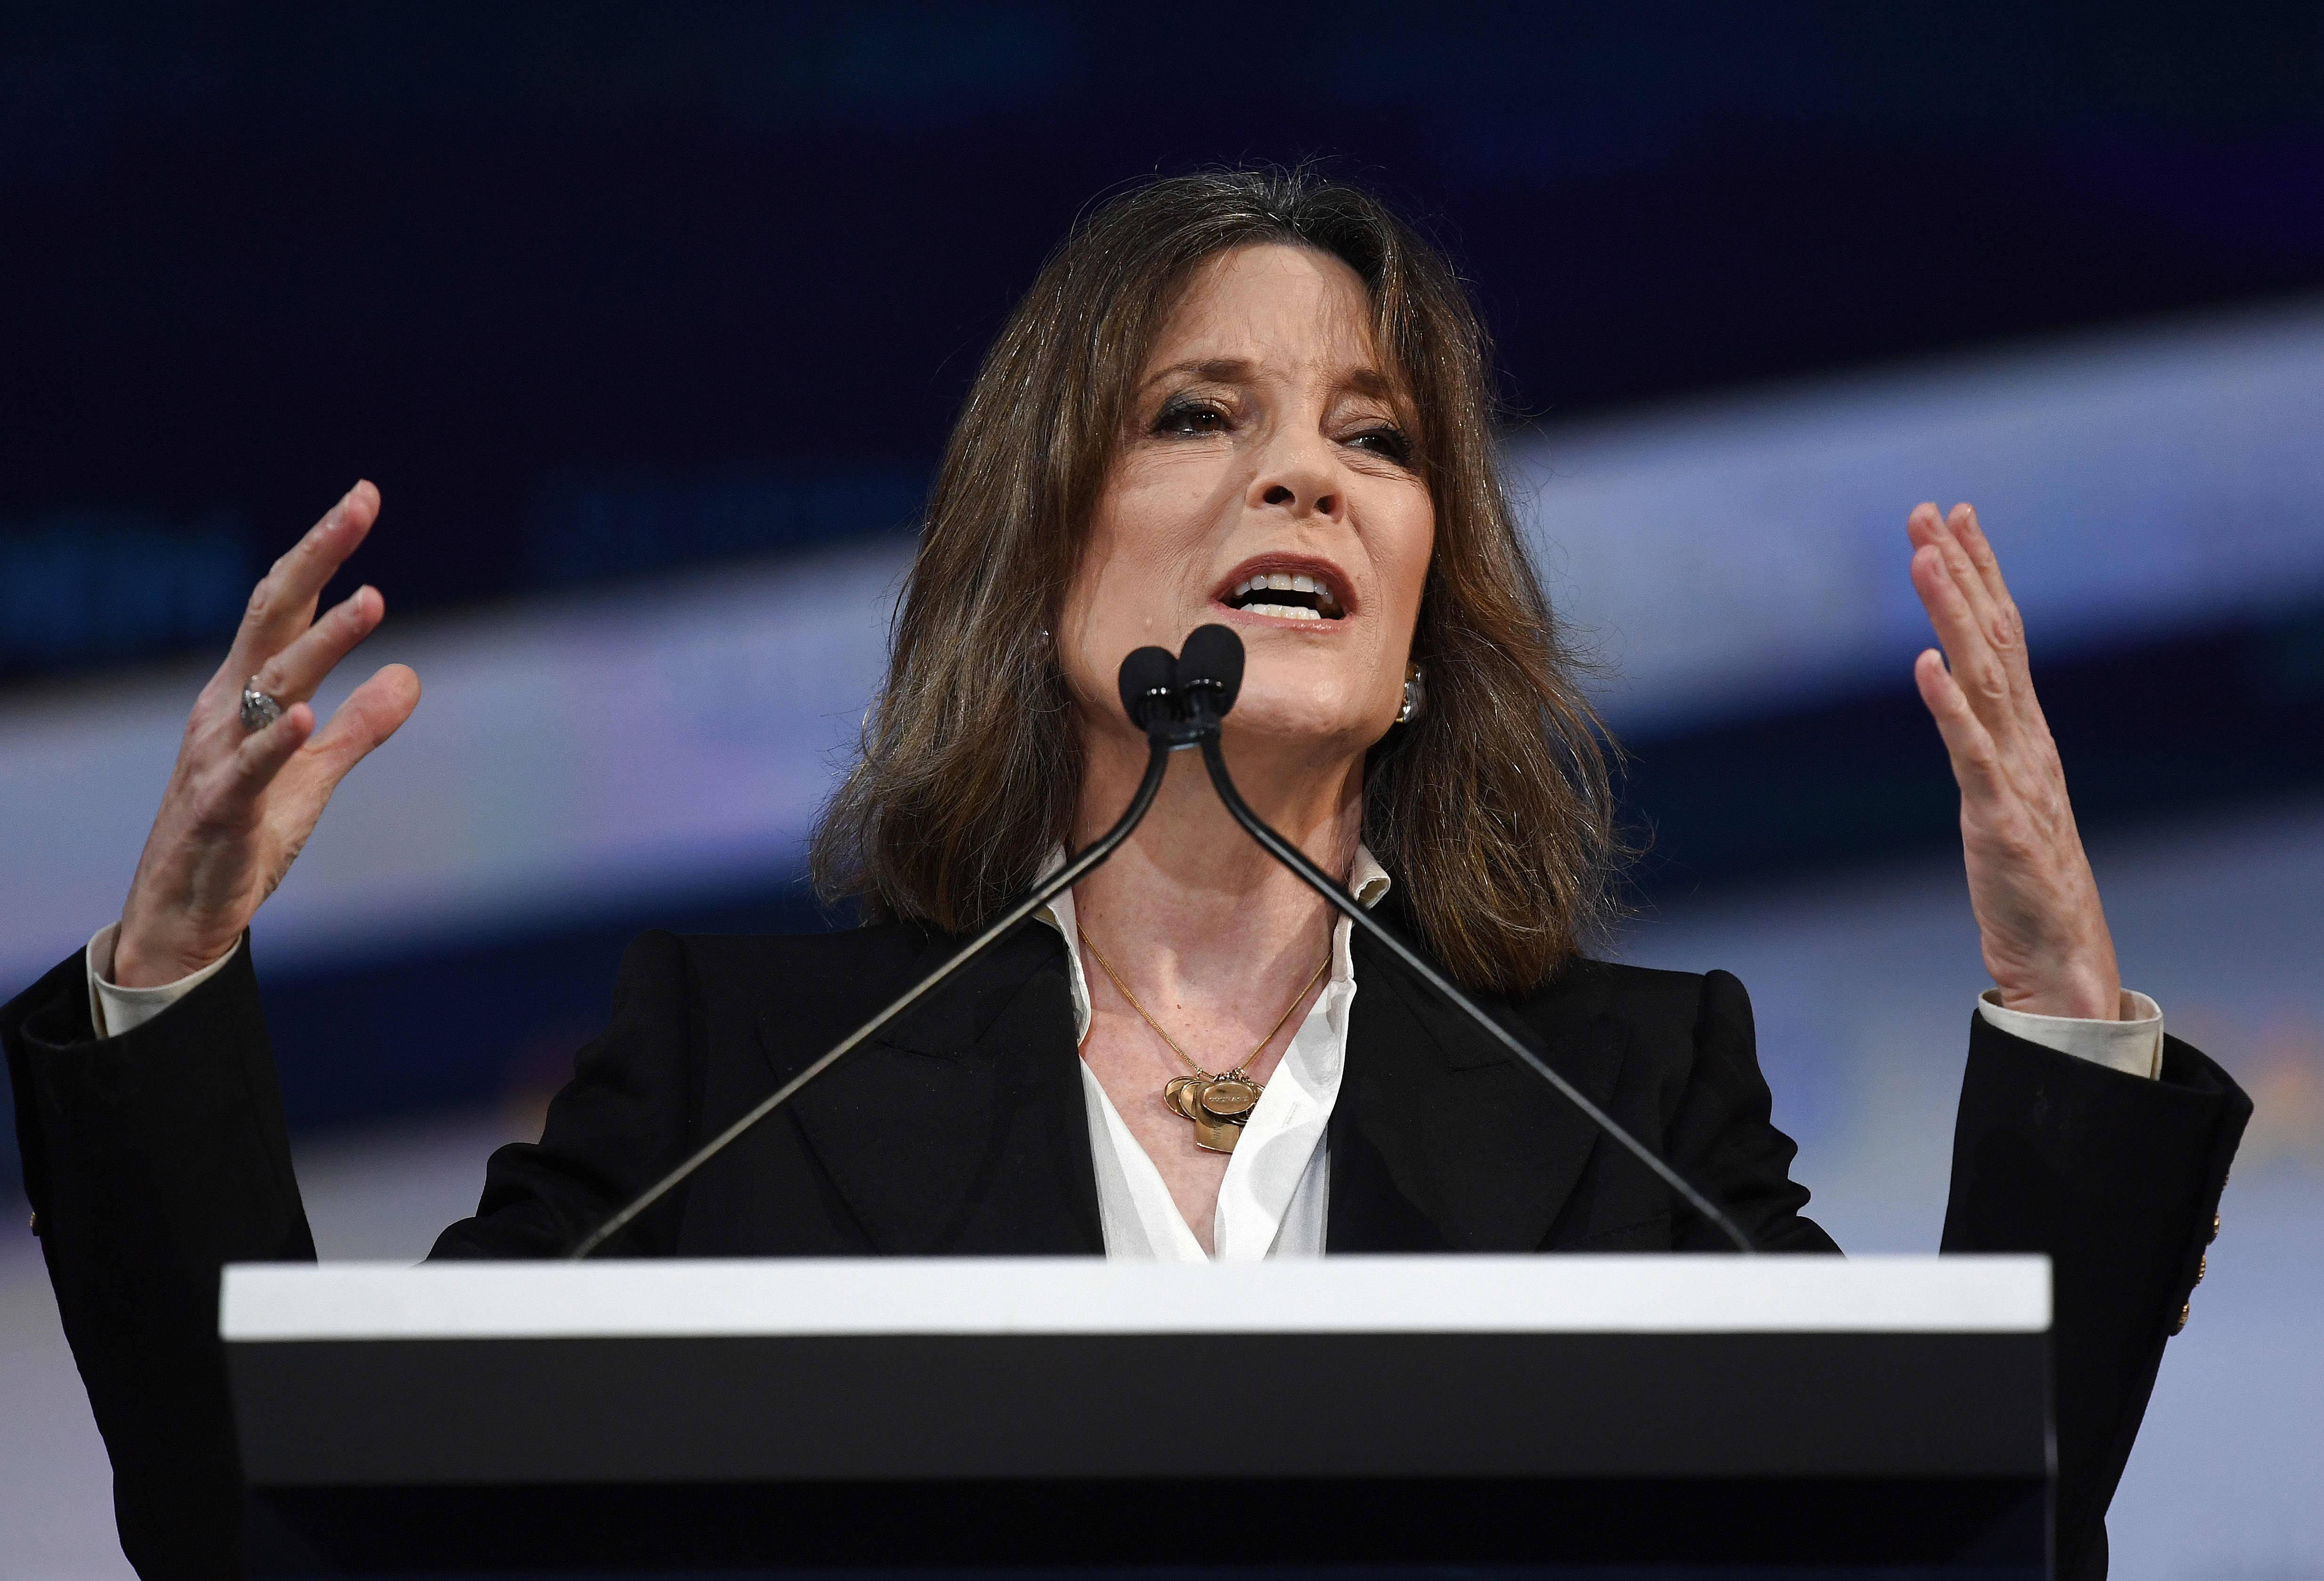 Marianne Williamson sells $149 tickets for 'love and power' seminar to pay off presidential campaign debt